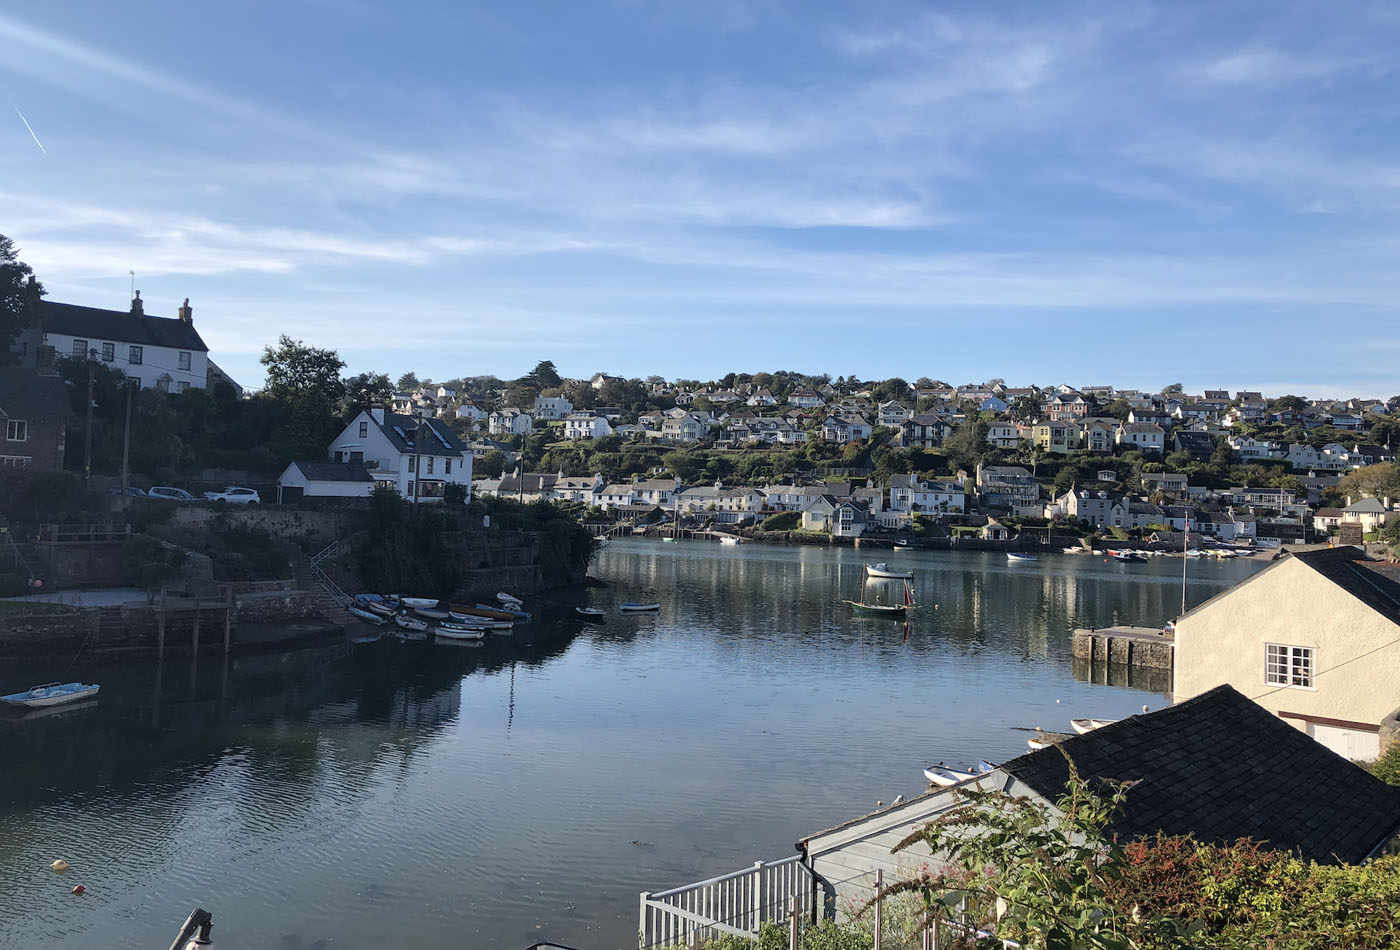 The Trouble with Maggie Cole filming locations - Noss Mayo